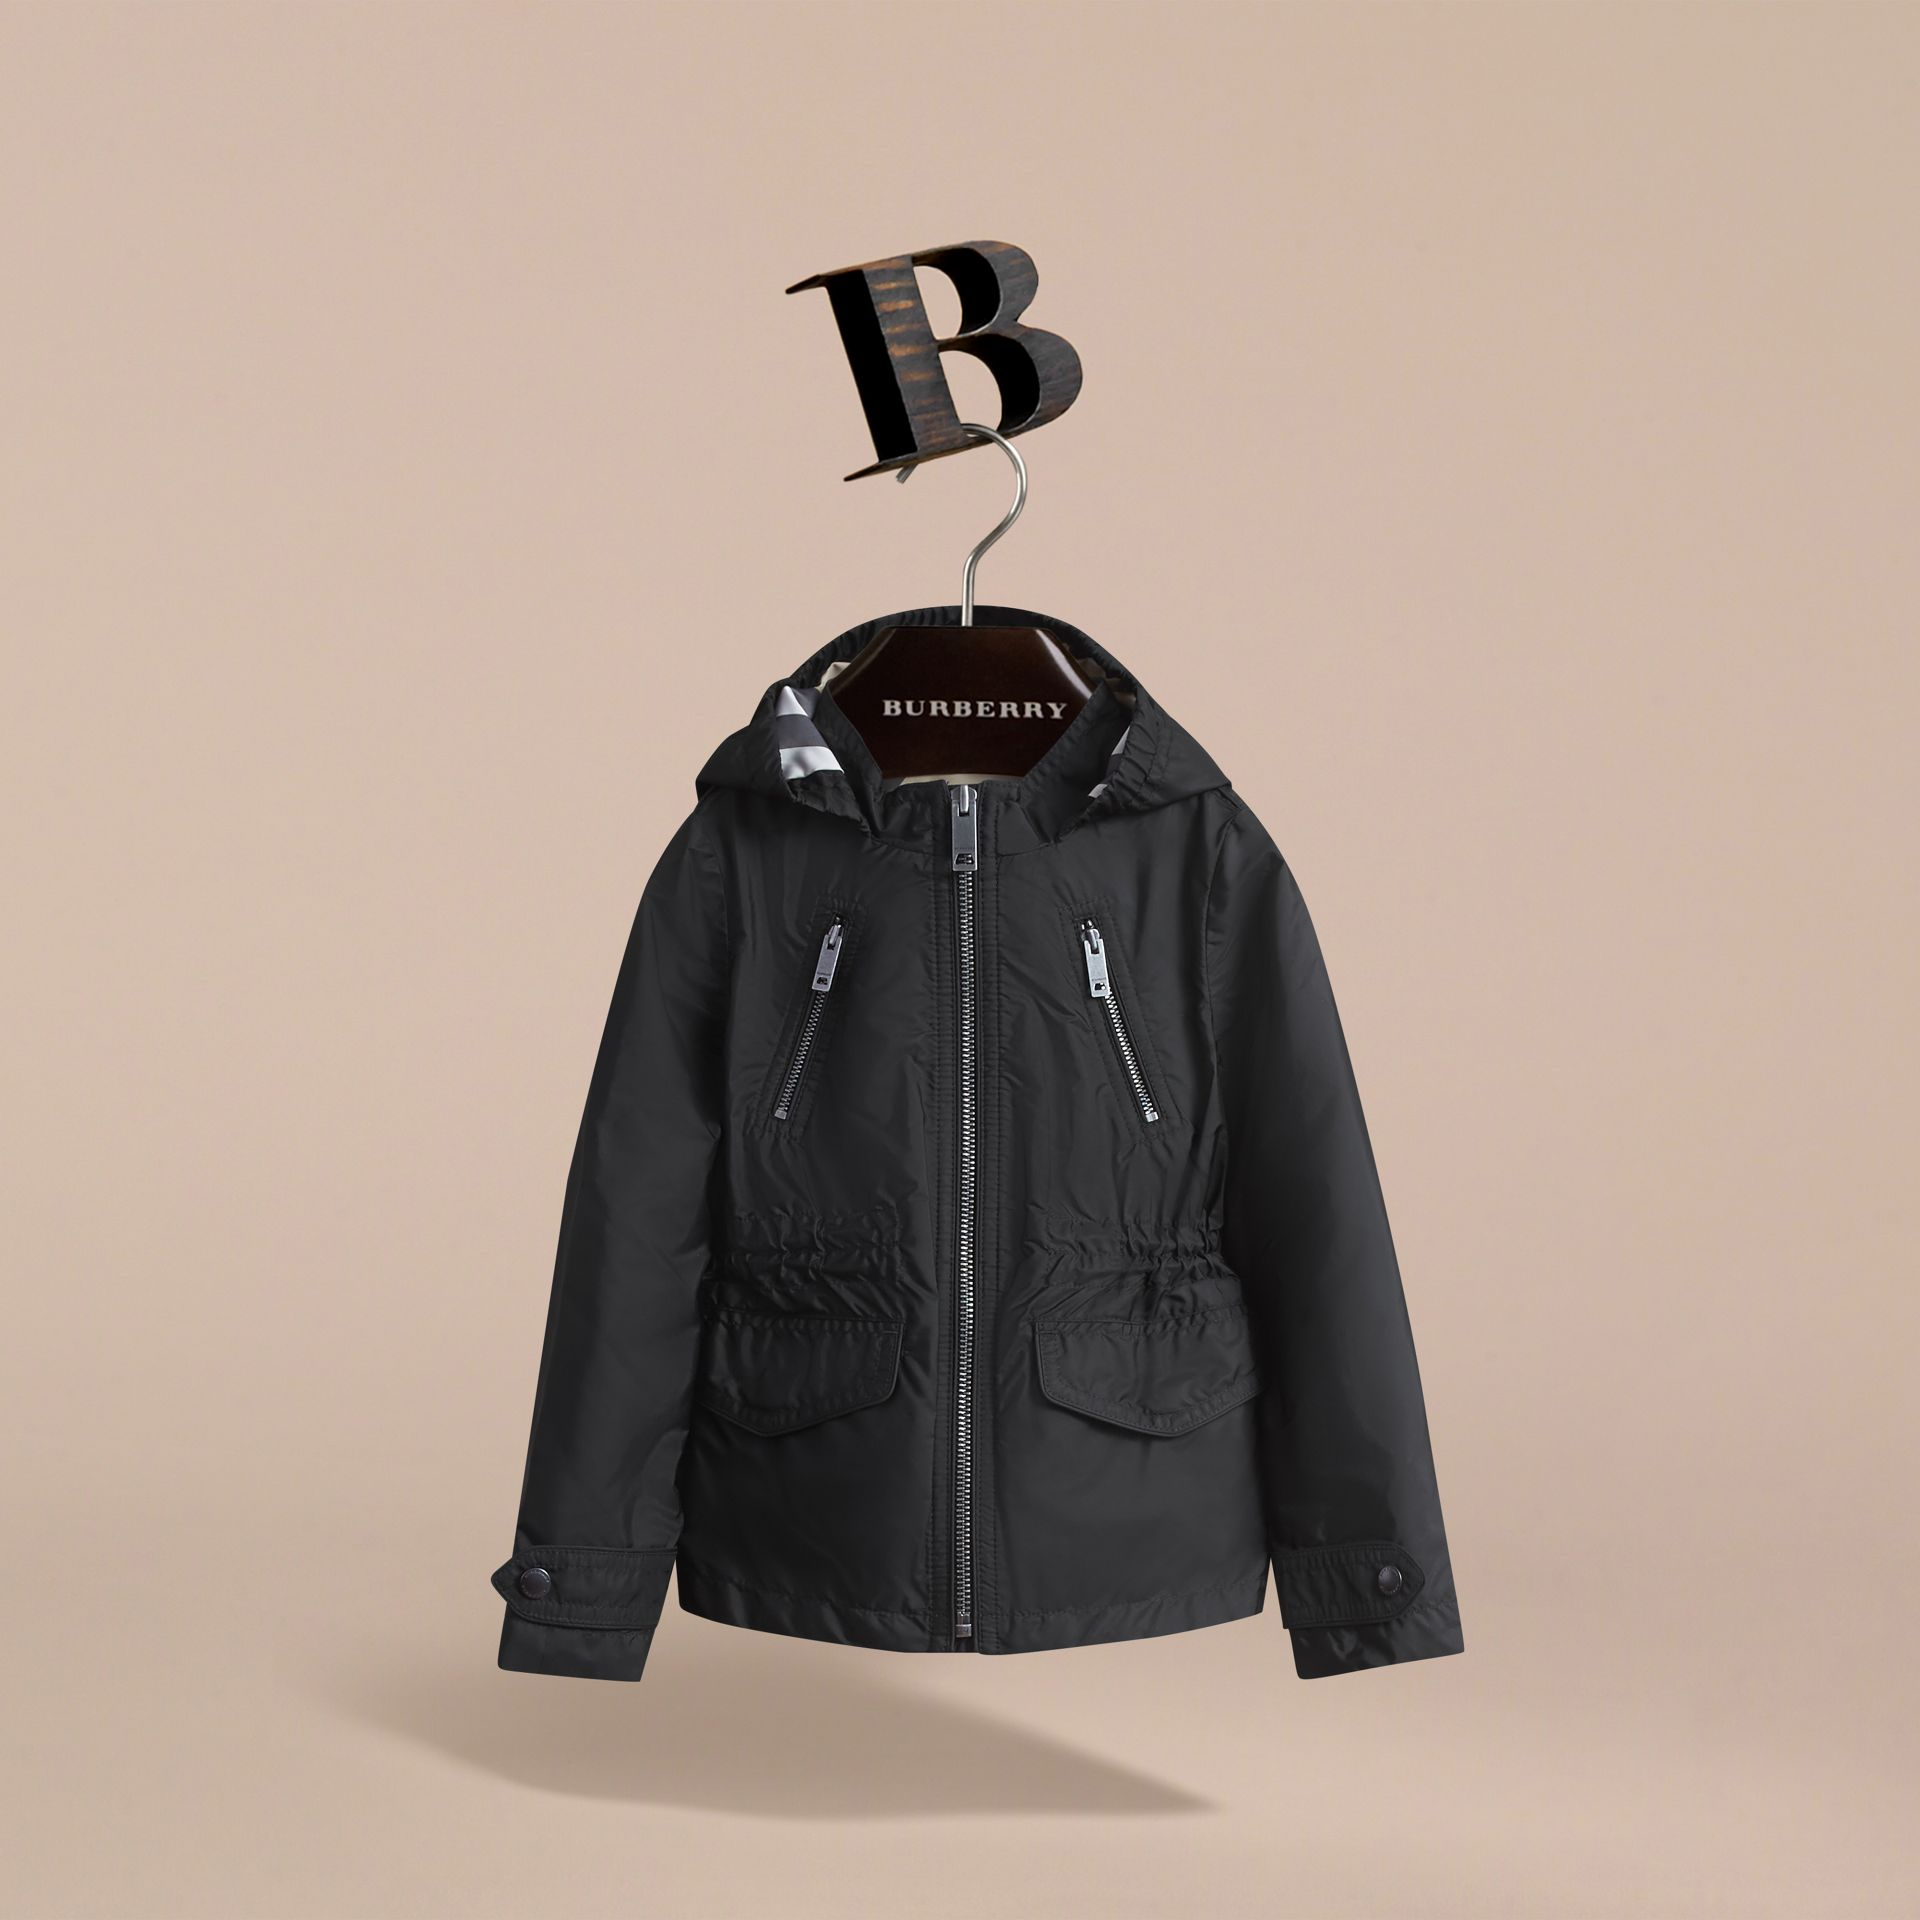 Veste à capuche repliable en tissu technique - Fille | Burberry - photo de la galerie 3